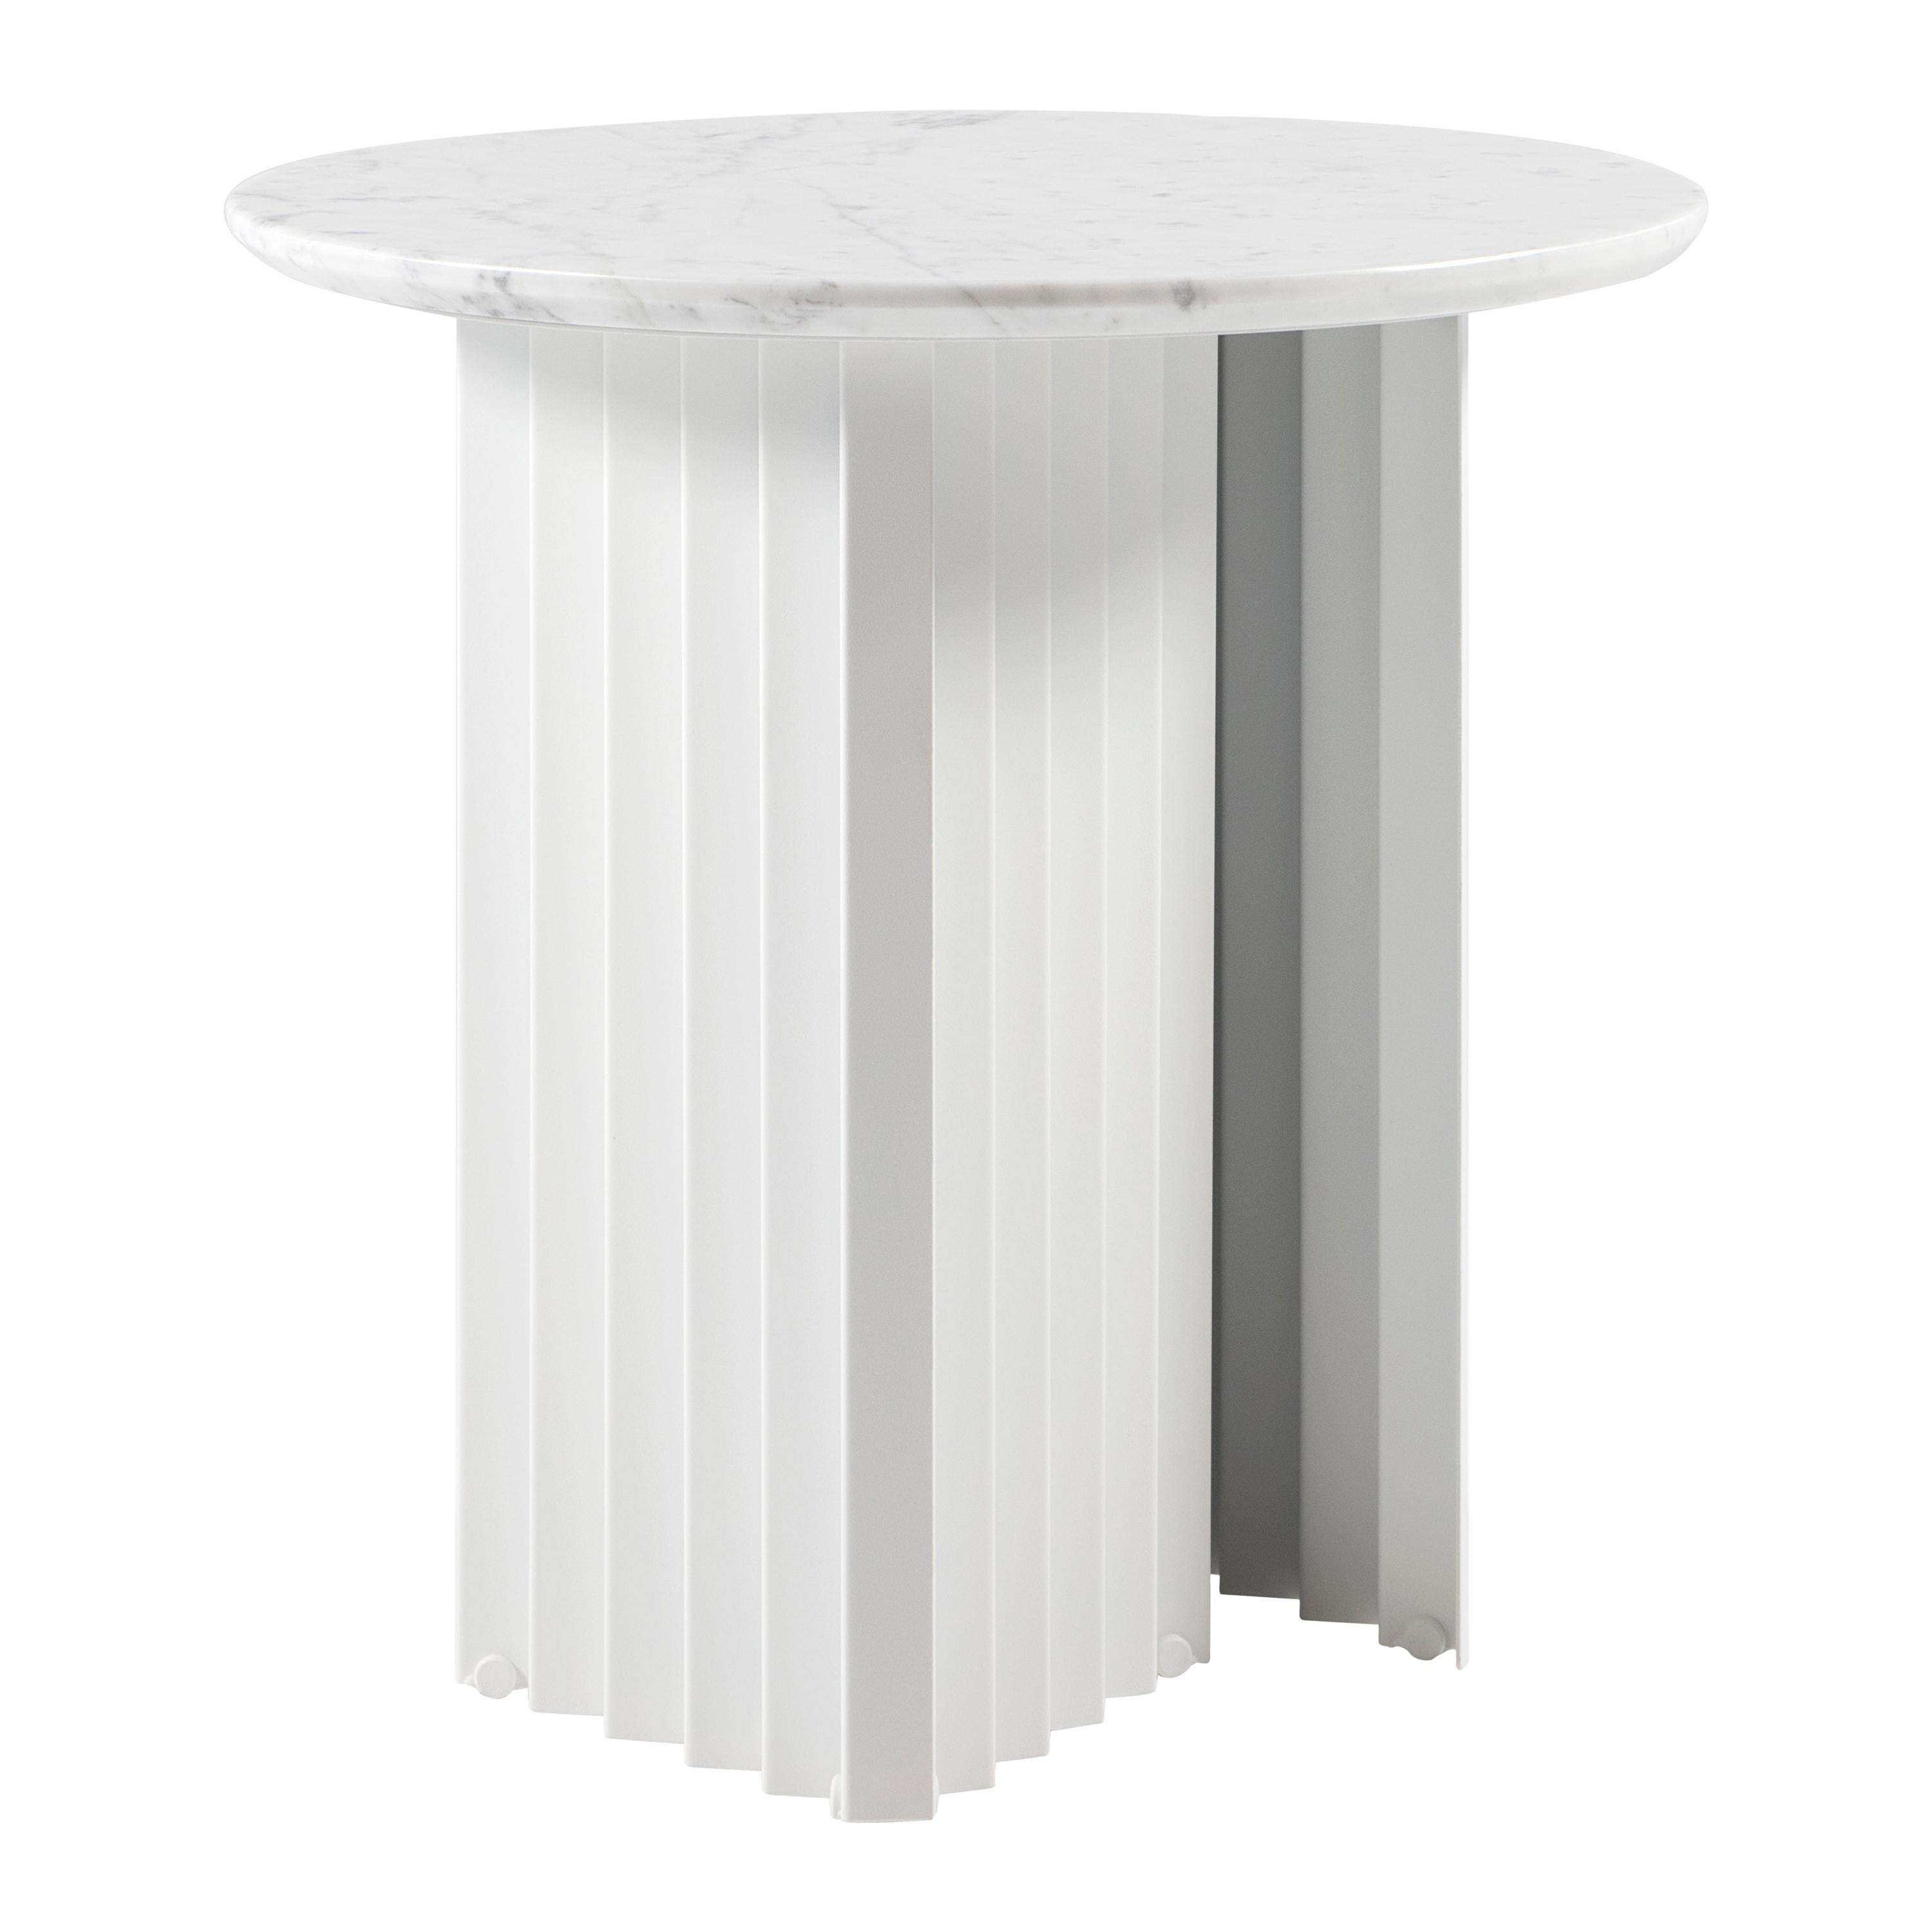 RS Barcelona Plec Round Small Table in White Marble by A.P.O.